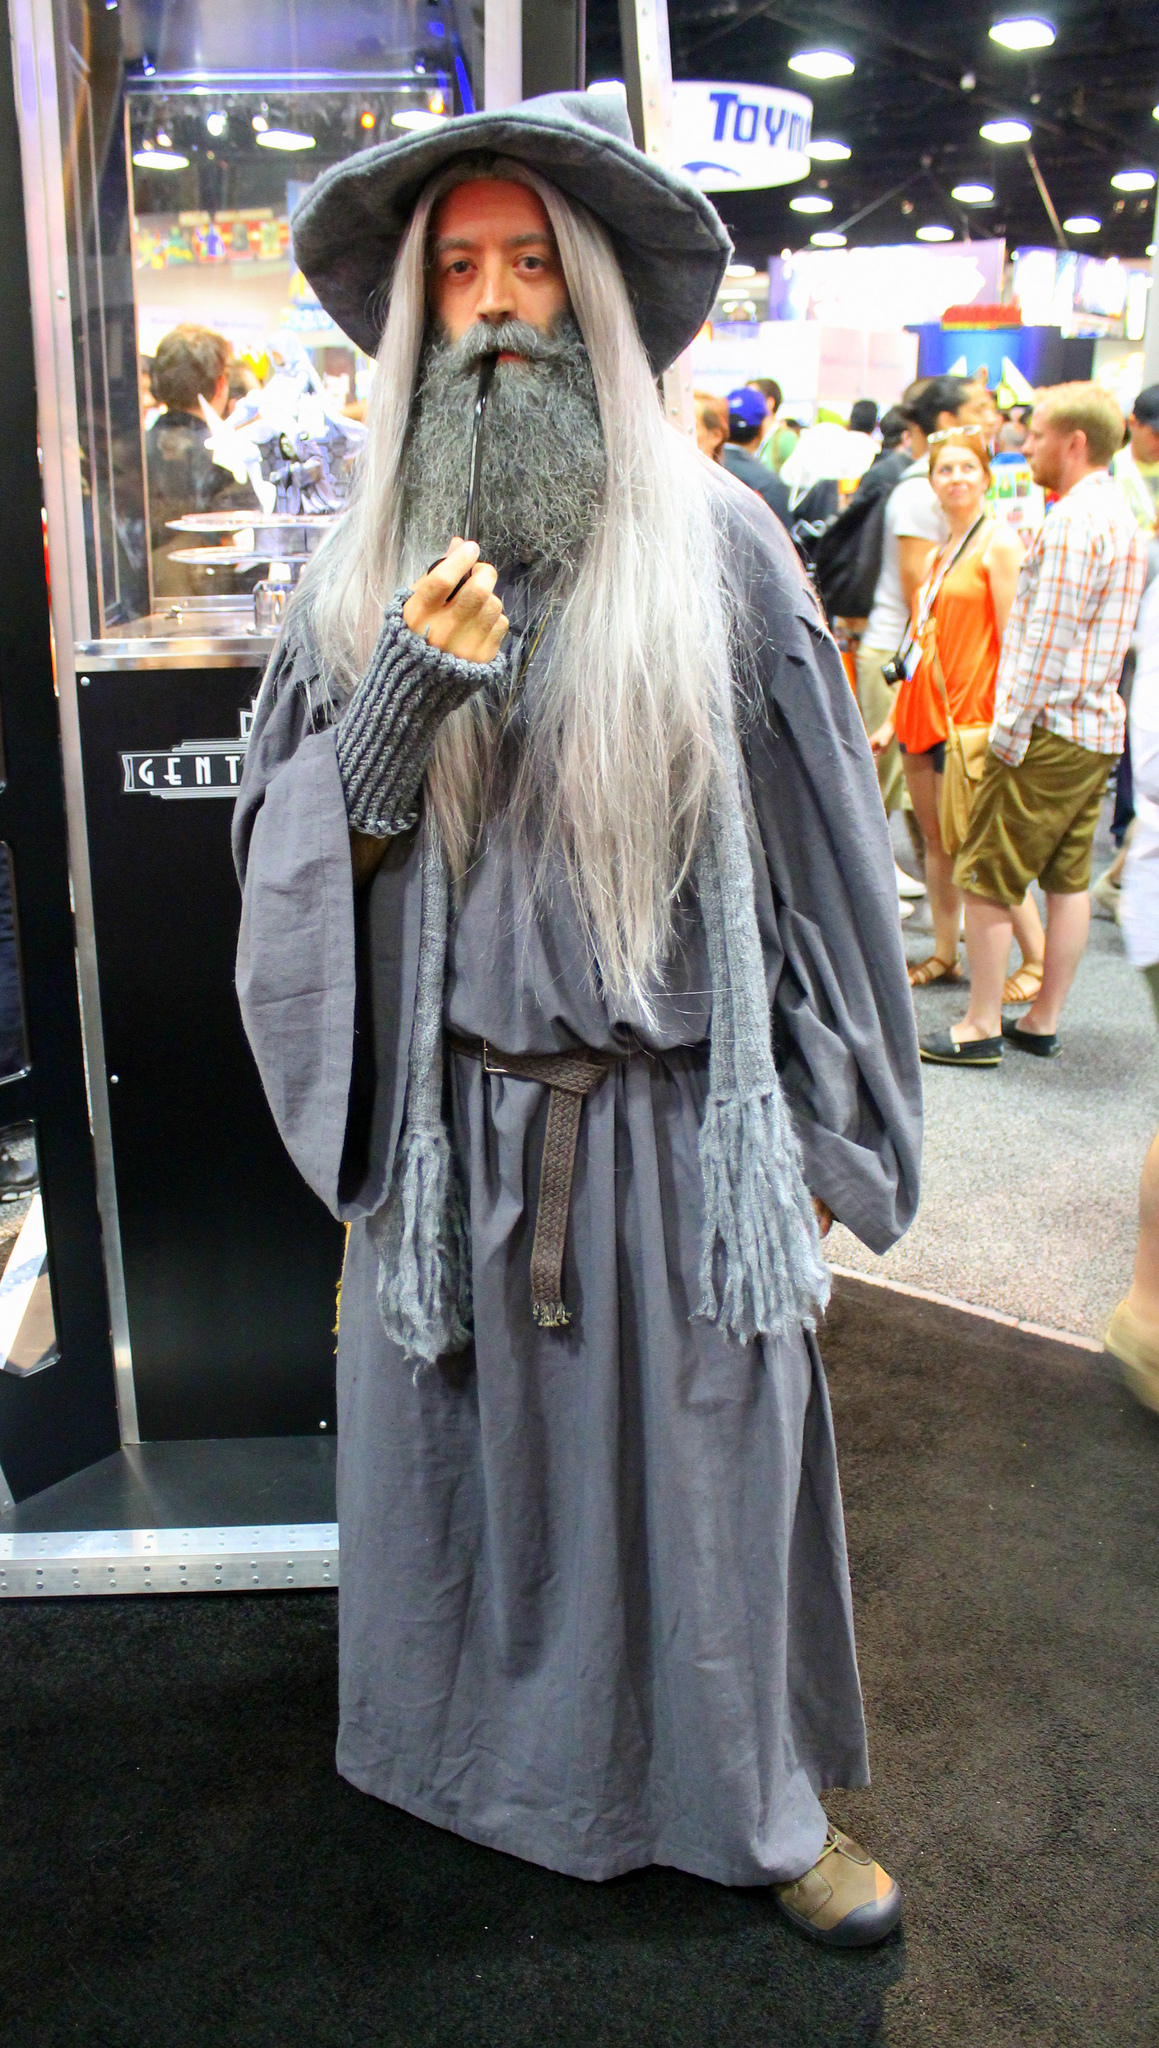 Gandalf Cosplay Costume https://www.flickr.com/photos/lorenjavier/11827499813